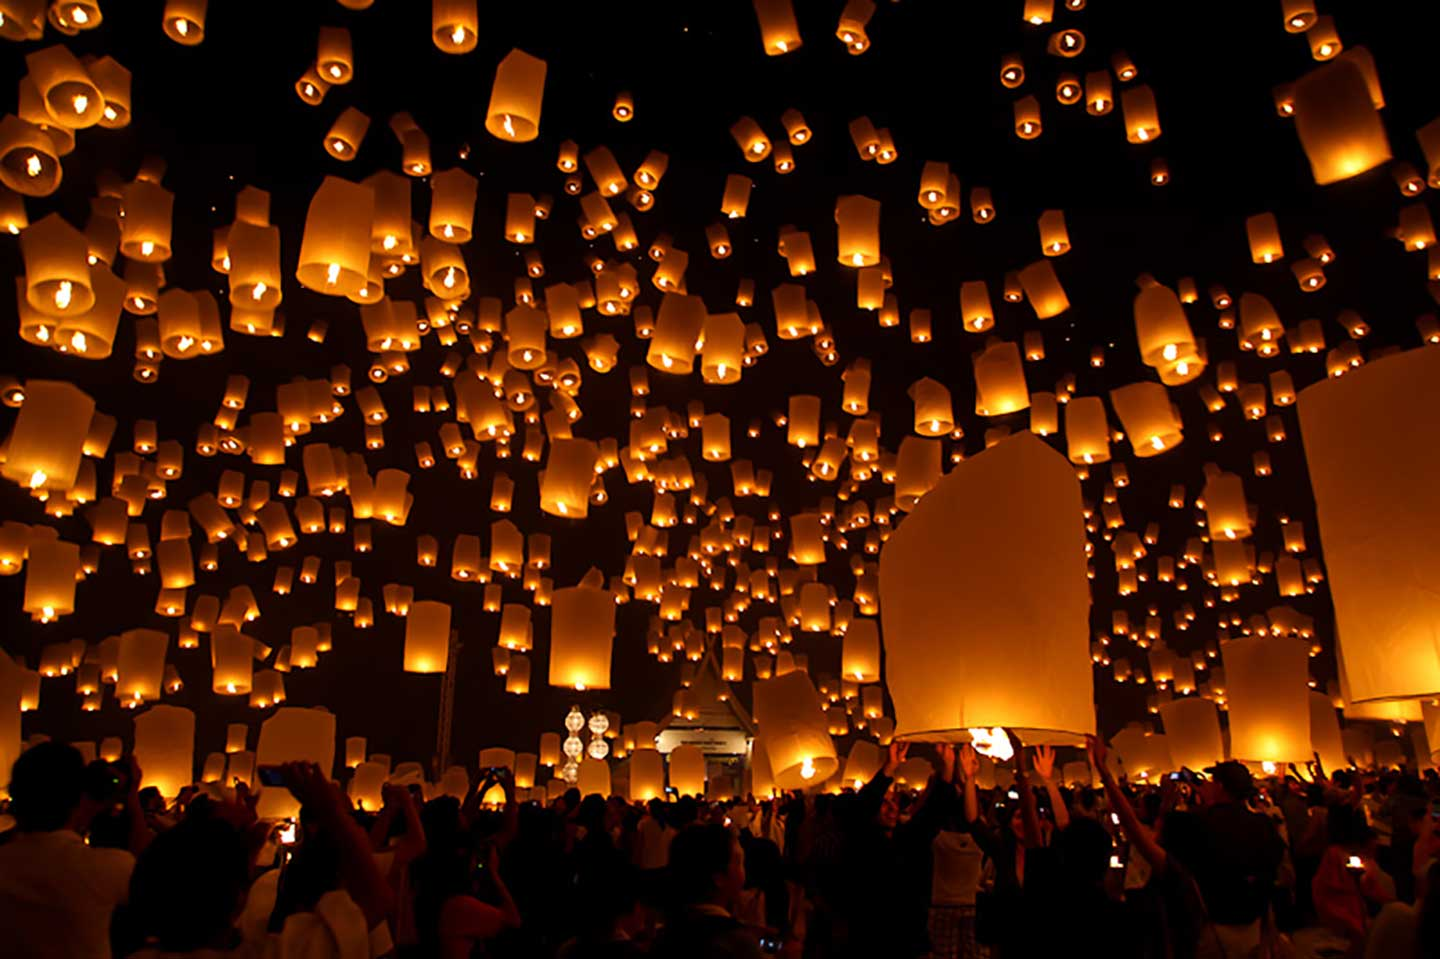 lantern festival_Pingxi Sky Lantern Festival: A Real Treat to Eyes | The BackPackers